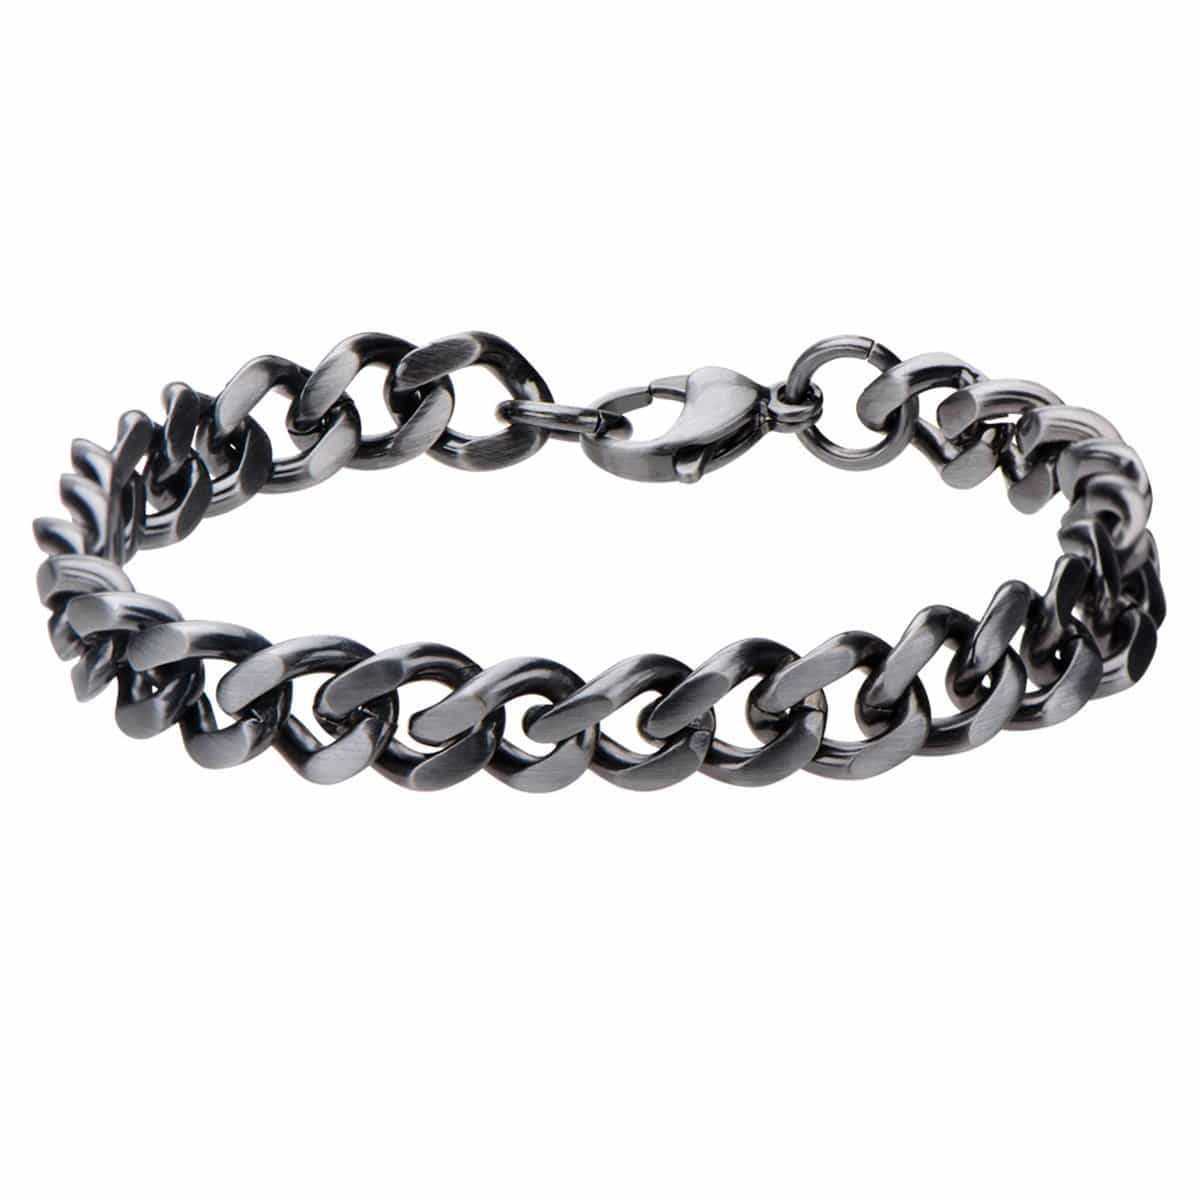 Dark Gray Stainless Steel Brushed 8.7mm Curb Chain Bracelet